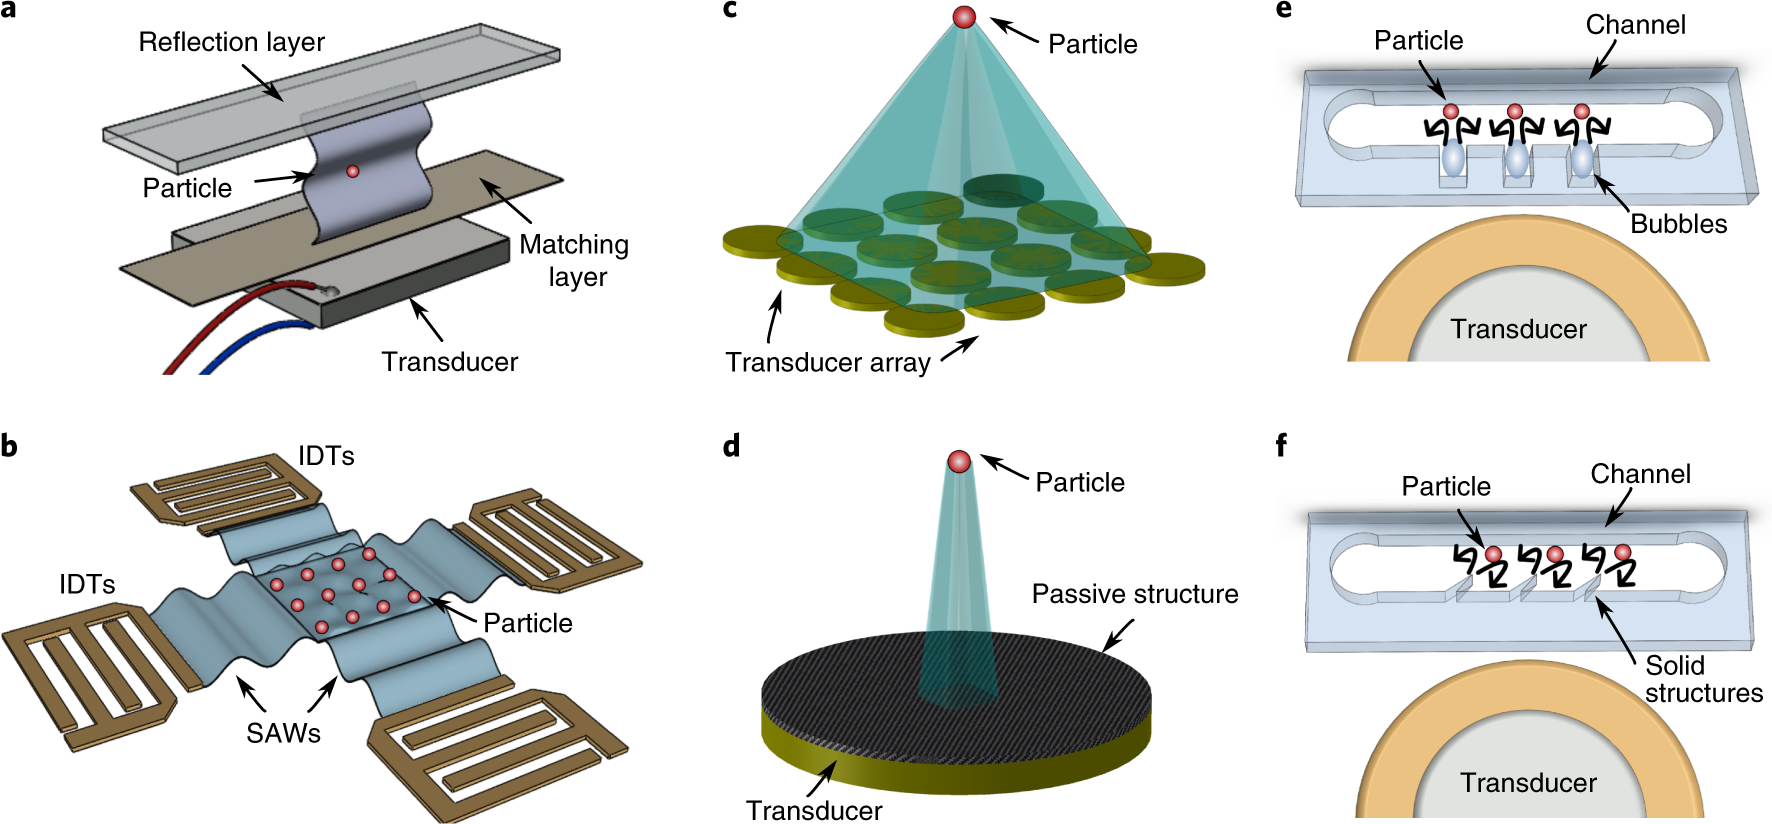 Acoustic tweezers for the life sciences | Nature Methods